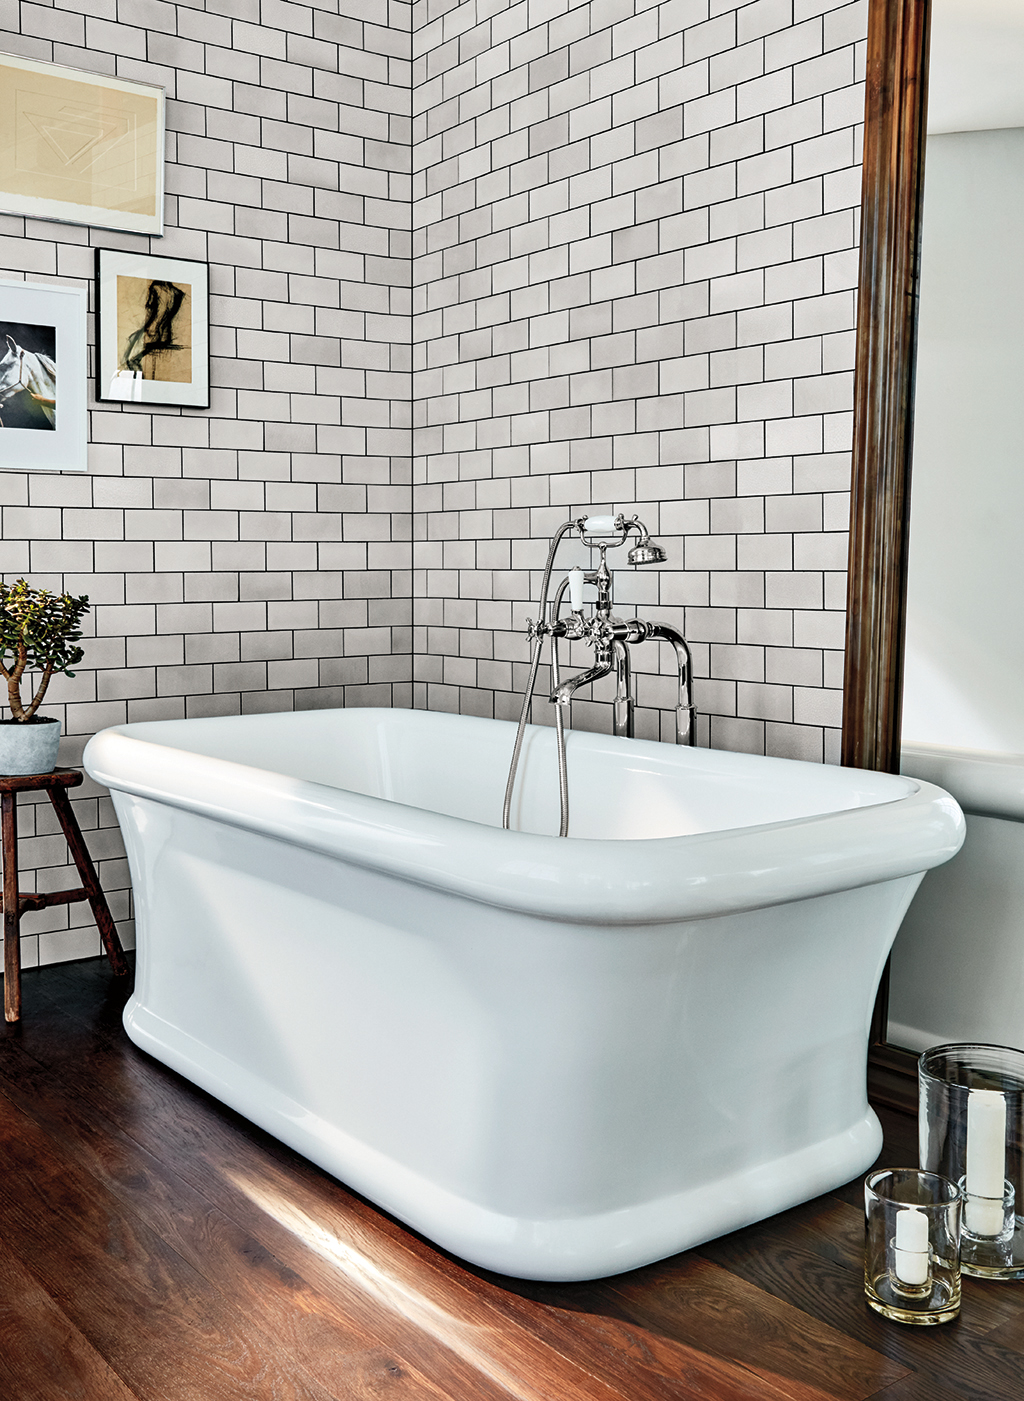 Meet Nilo, the New Iconic Bathtub | The Perfect Bath